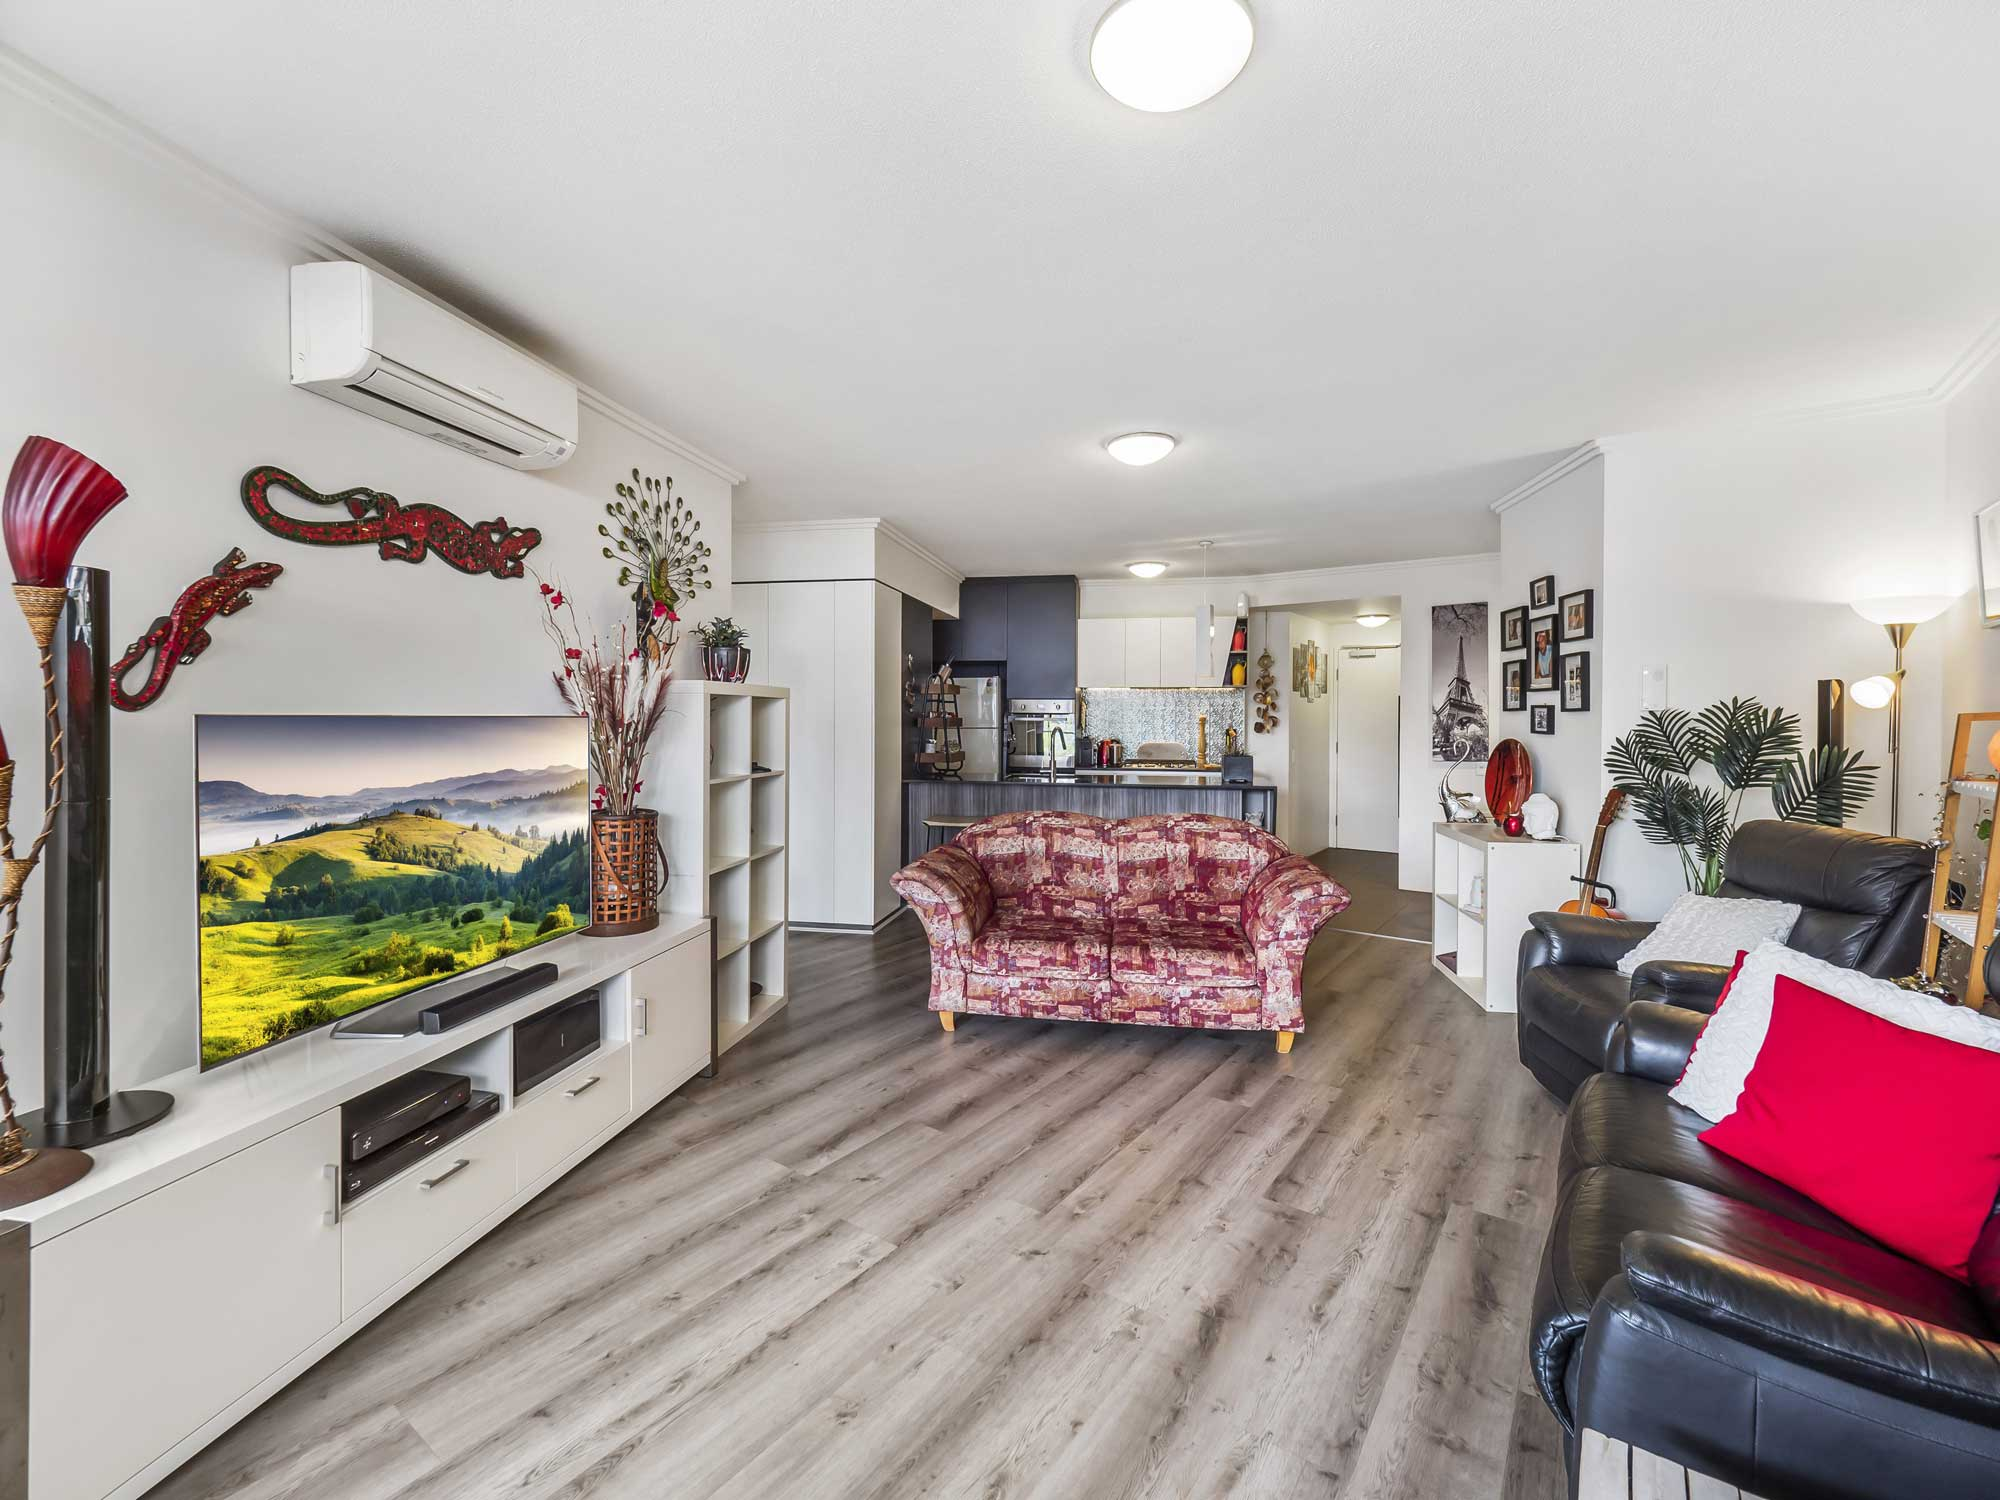 Real estate photography of Kangaroo Point apartment for sale - looking in